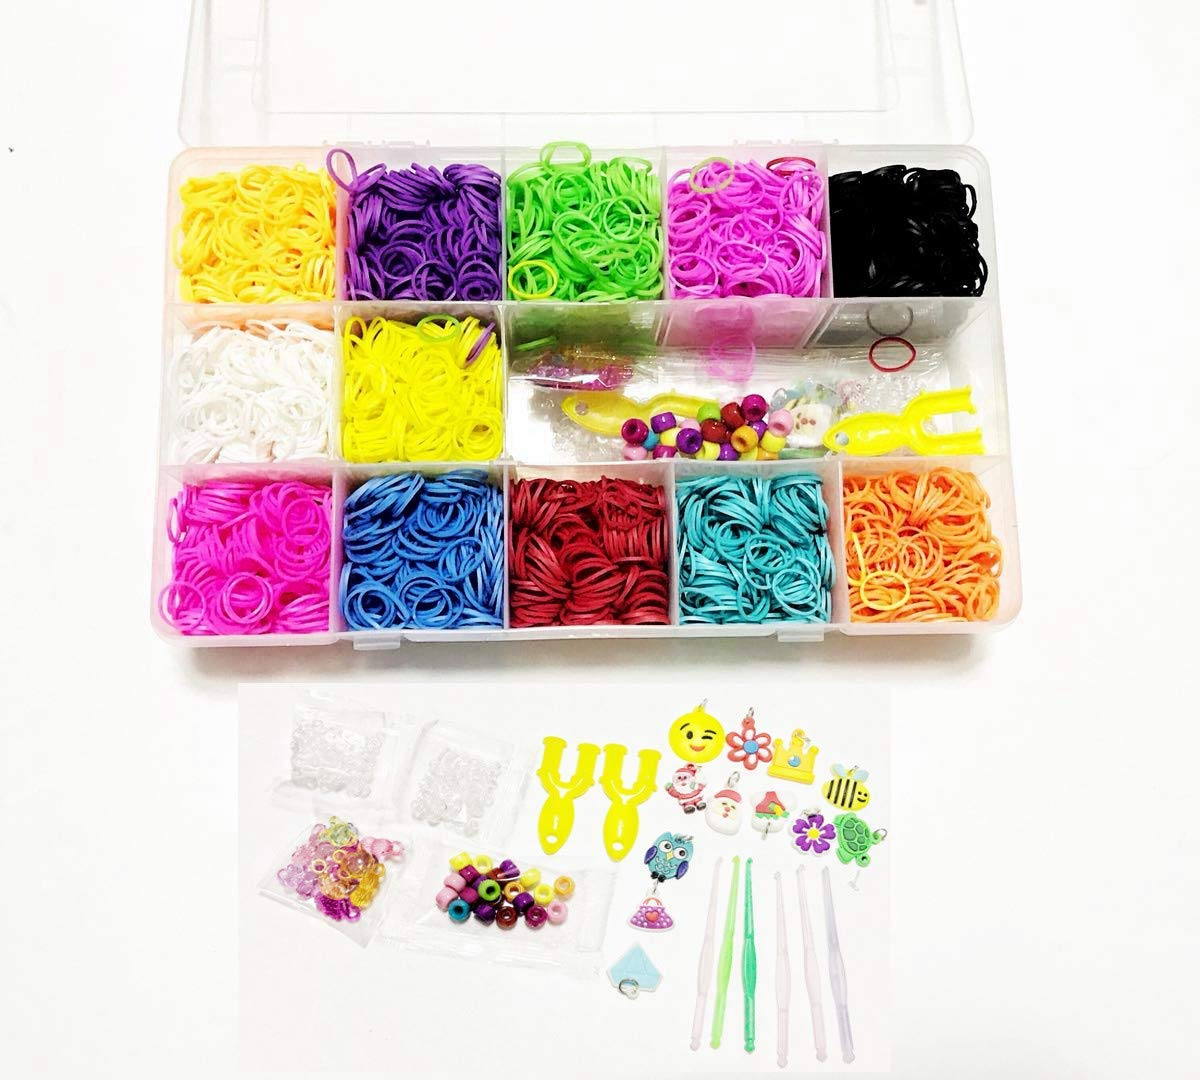 FRANNKY Rainbow Rubber Bands Mega Refill Loom Includes: 5,500 Premium Quality Rubber Bands Set with 6 Hooks,100 S-Clips,12 Silicone Charms,45 Beads (12 Rainbow Colors)